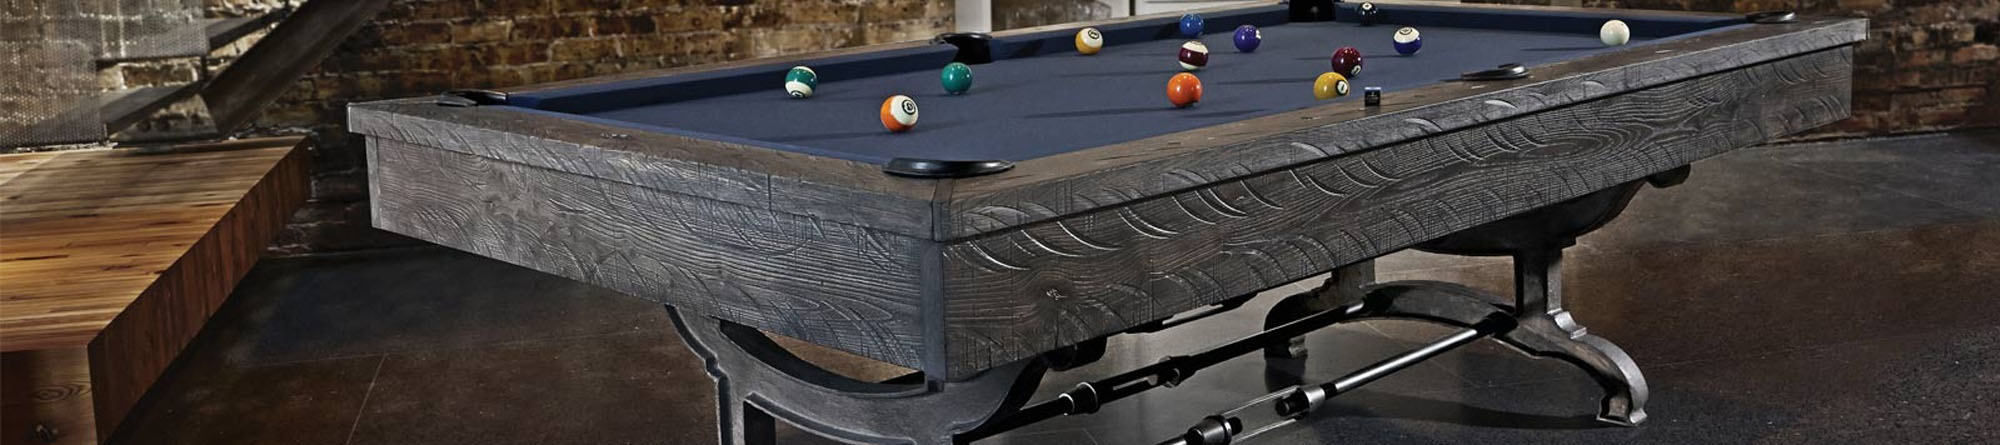 Delicieux Pool_tables